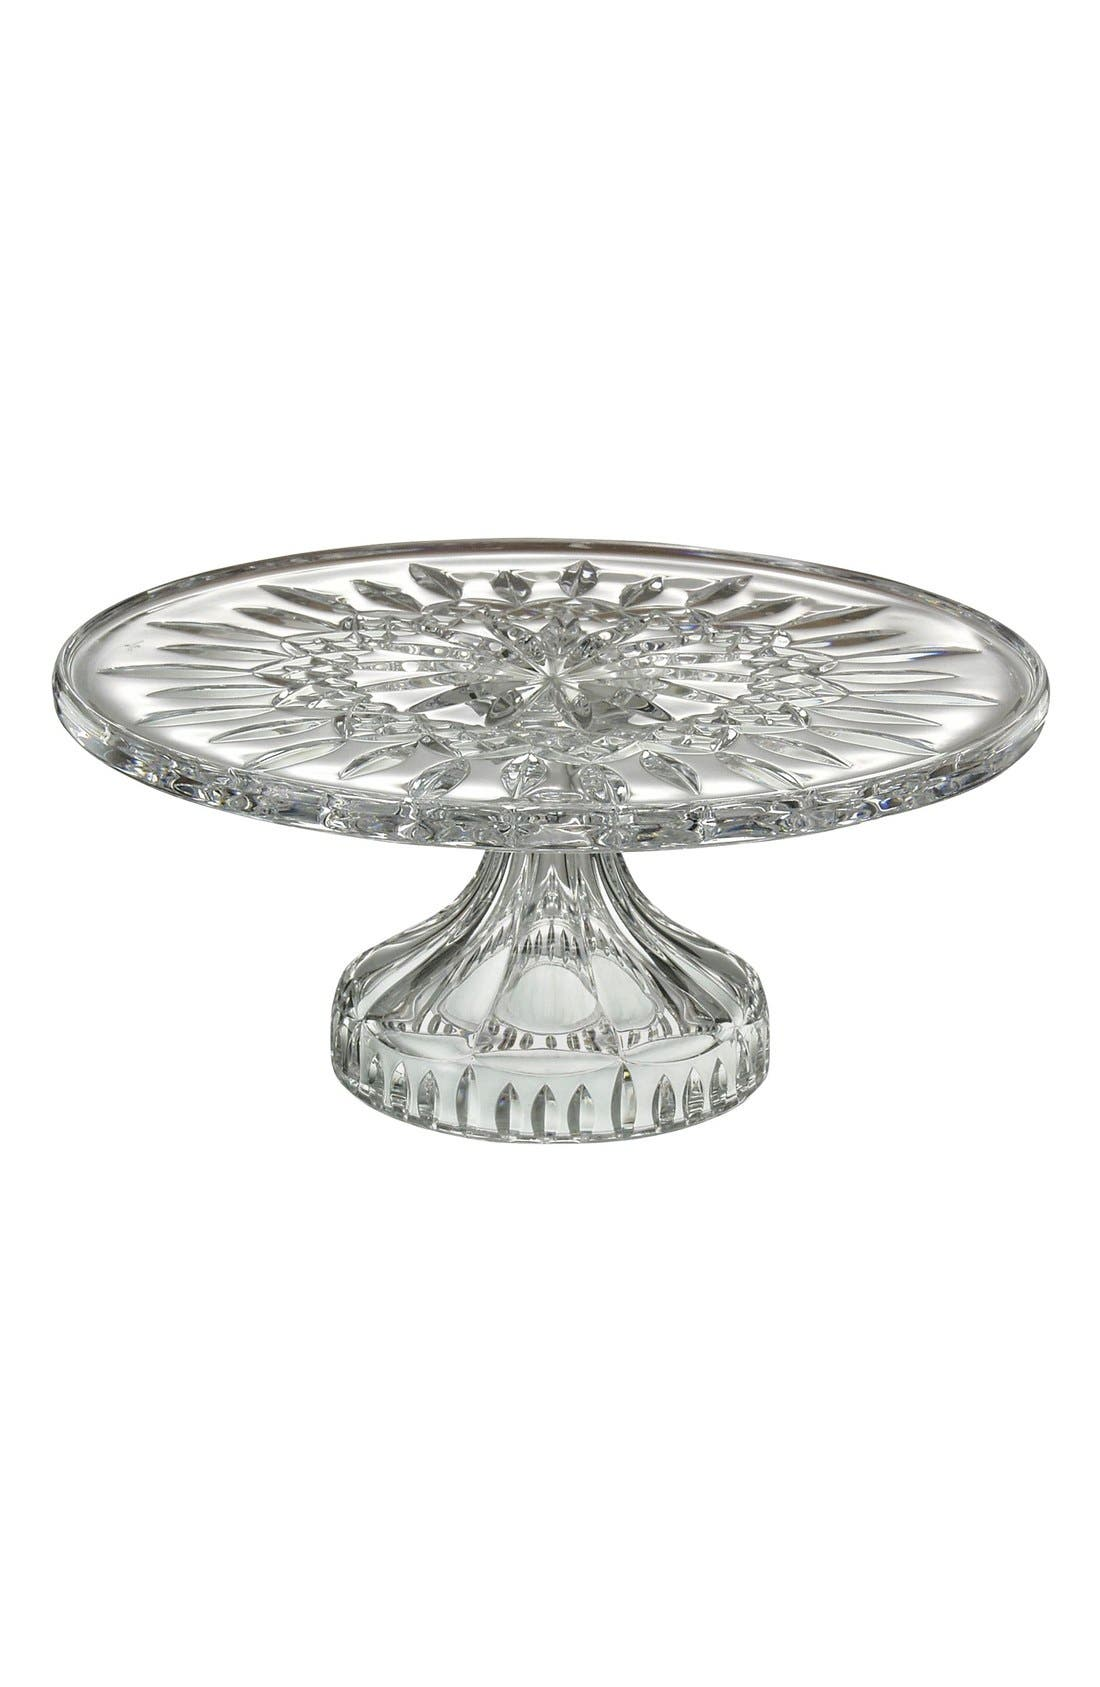 Alternate Image 1 Selected - Waterford 'Lismore' Lead Crystal Cake Stand